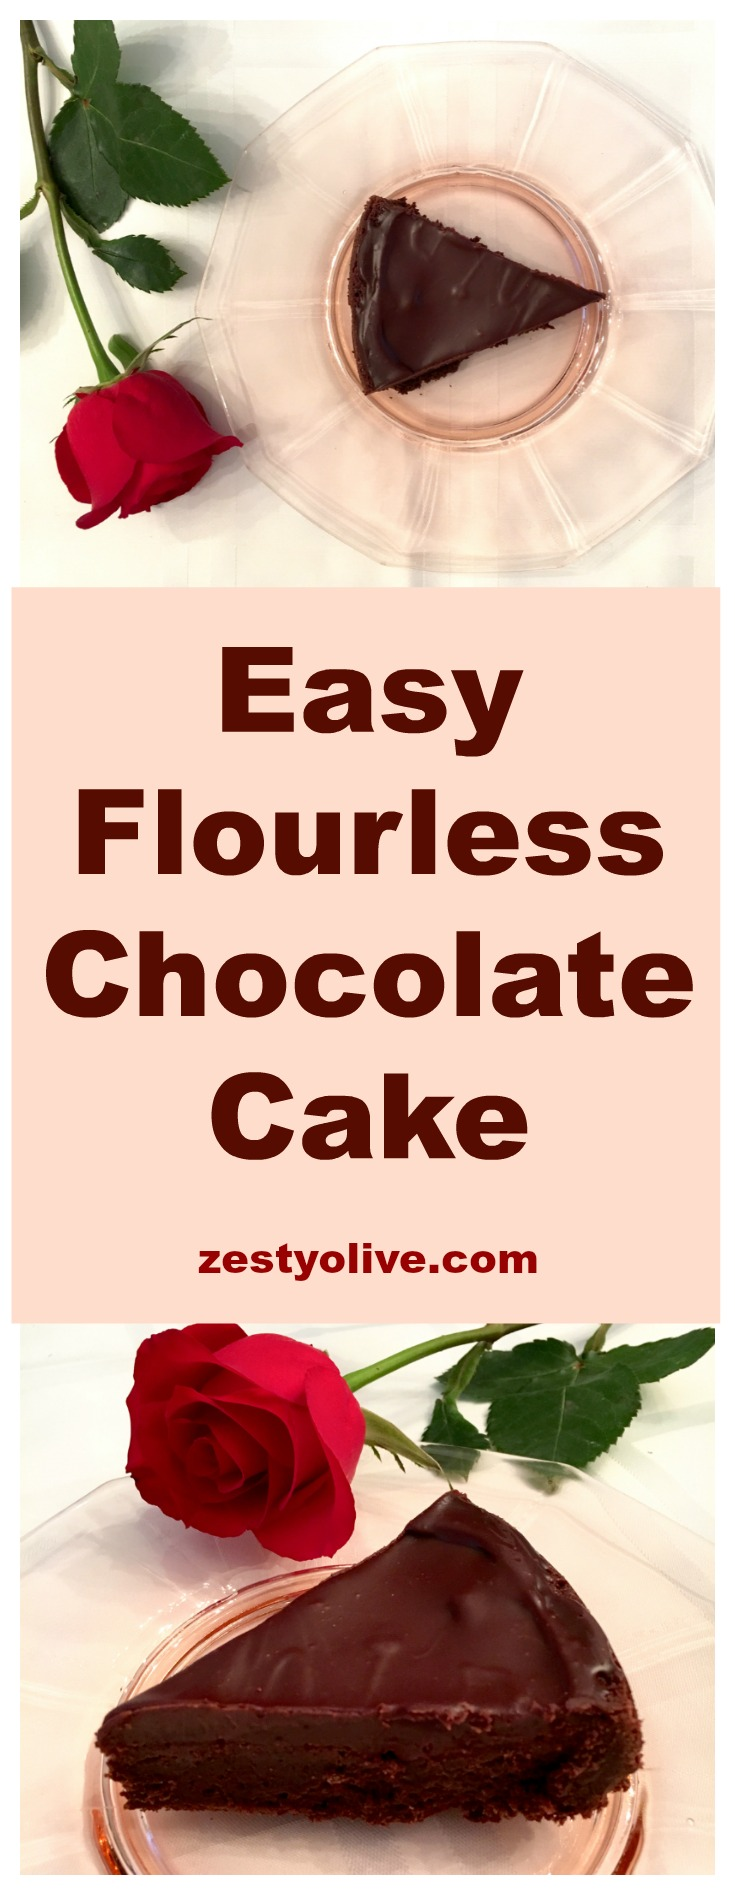 You can whip up this flourless chocolate cake with ganache glaze in one bowl ~ no need for a mixer! This cake is dense and rich - perfect for chocolate lovers. Bonus: it's easy!